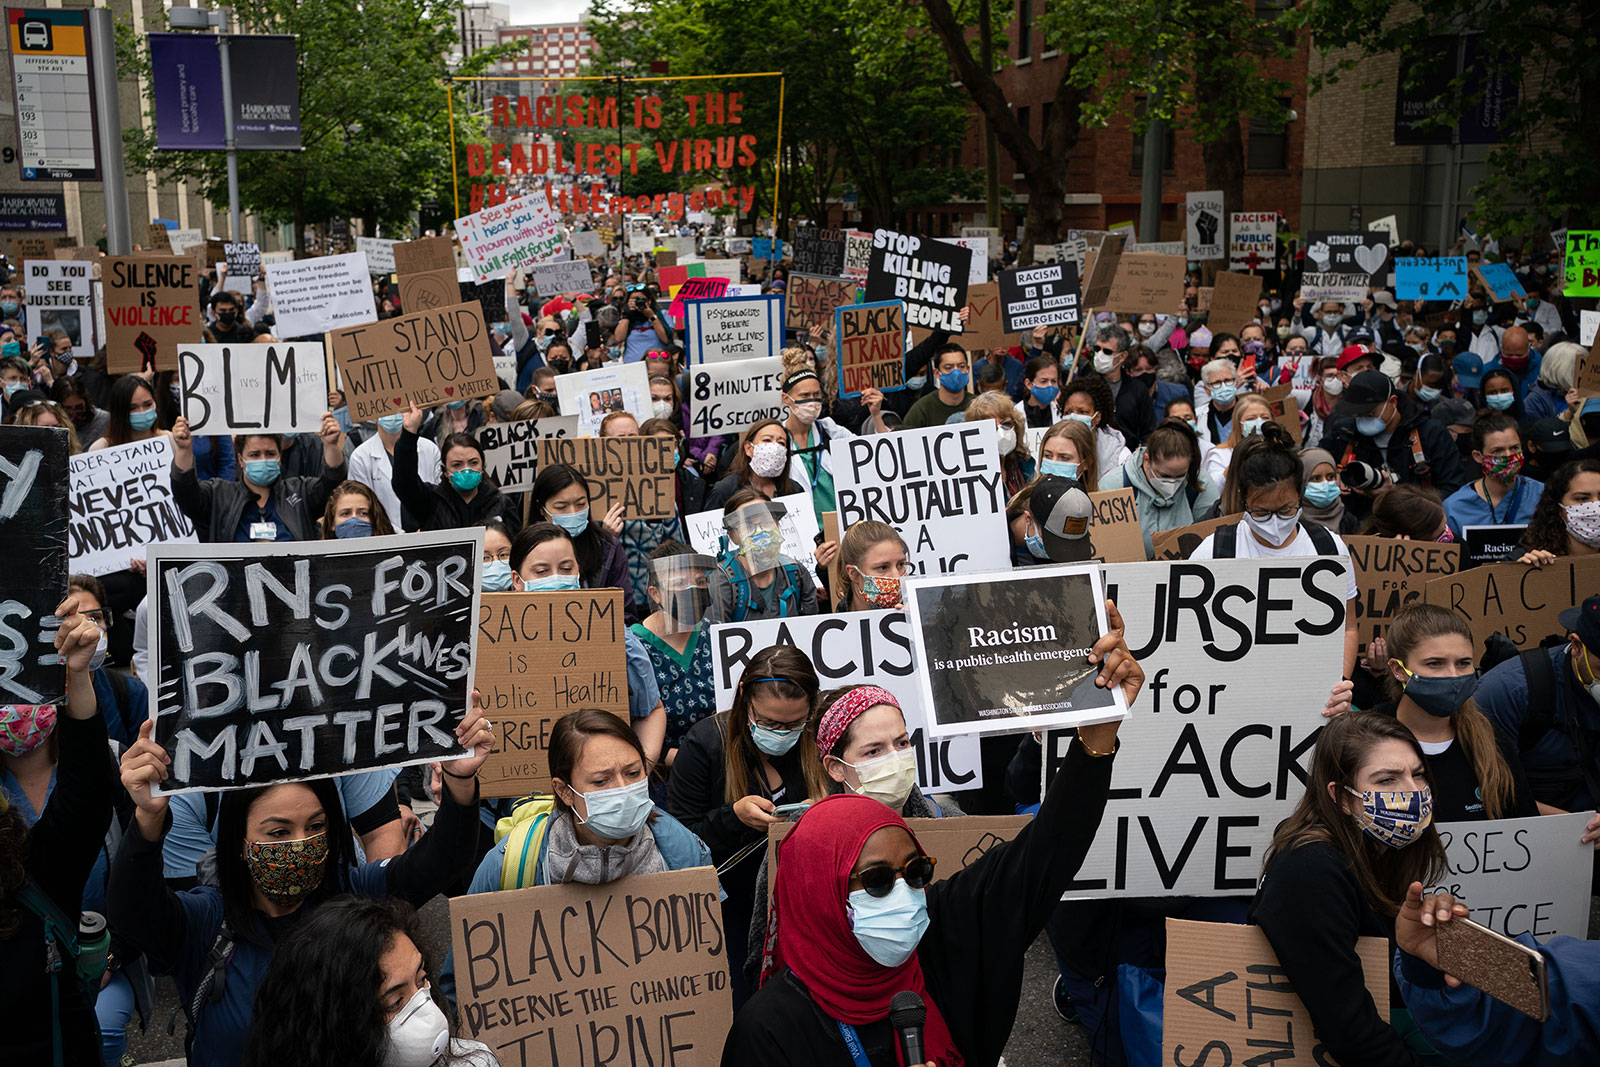 People march during a protest in Seattle on June 6.